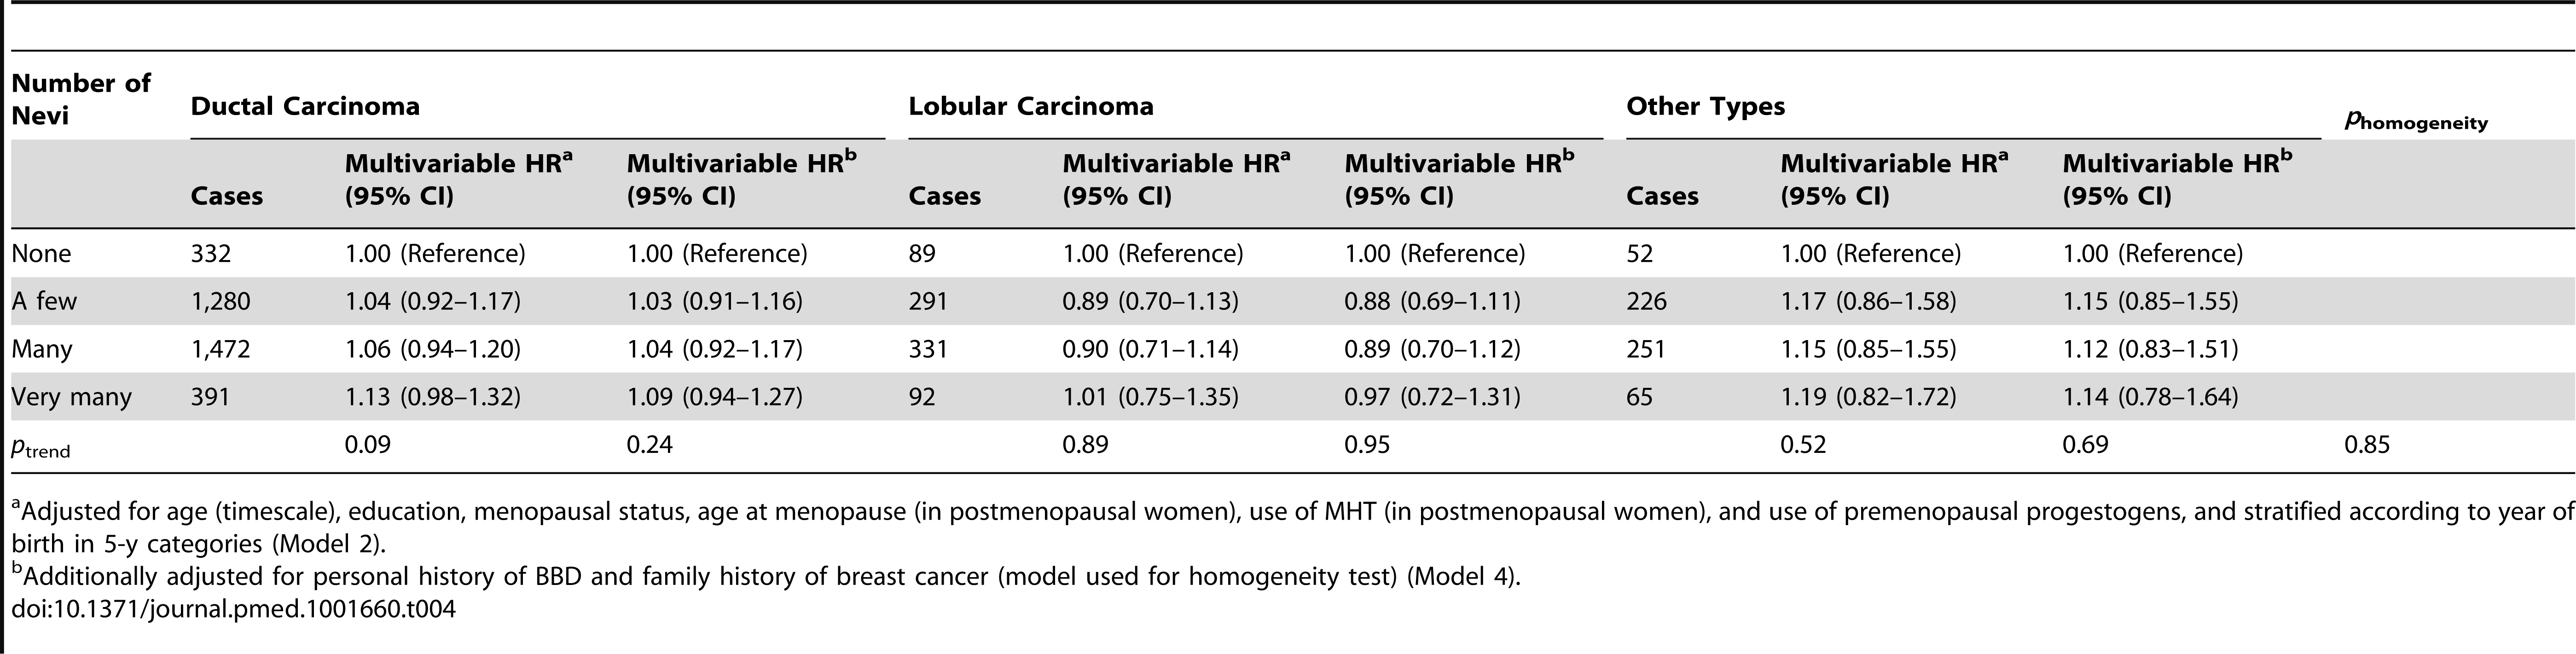 Hazard ratios and 95% confidence intervals for risk of breast cancer in relation to number of nevi, stratified by histological type of breast cancer, E3N cohort (<i>n</i> = 89,429).